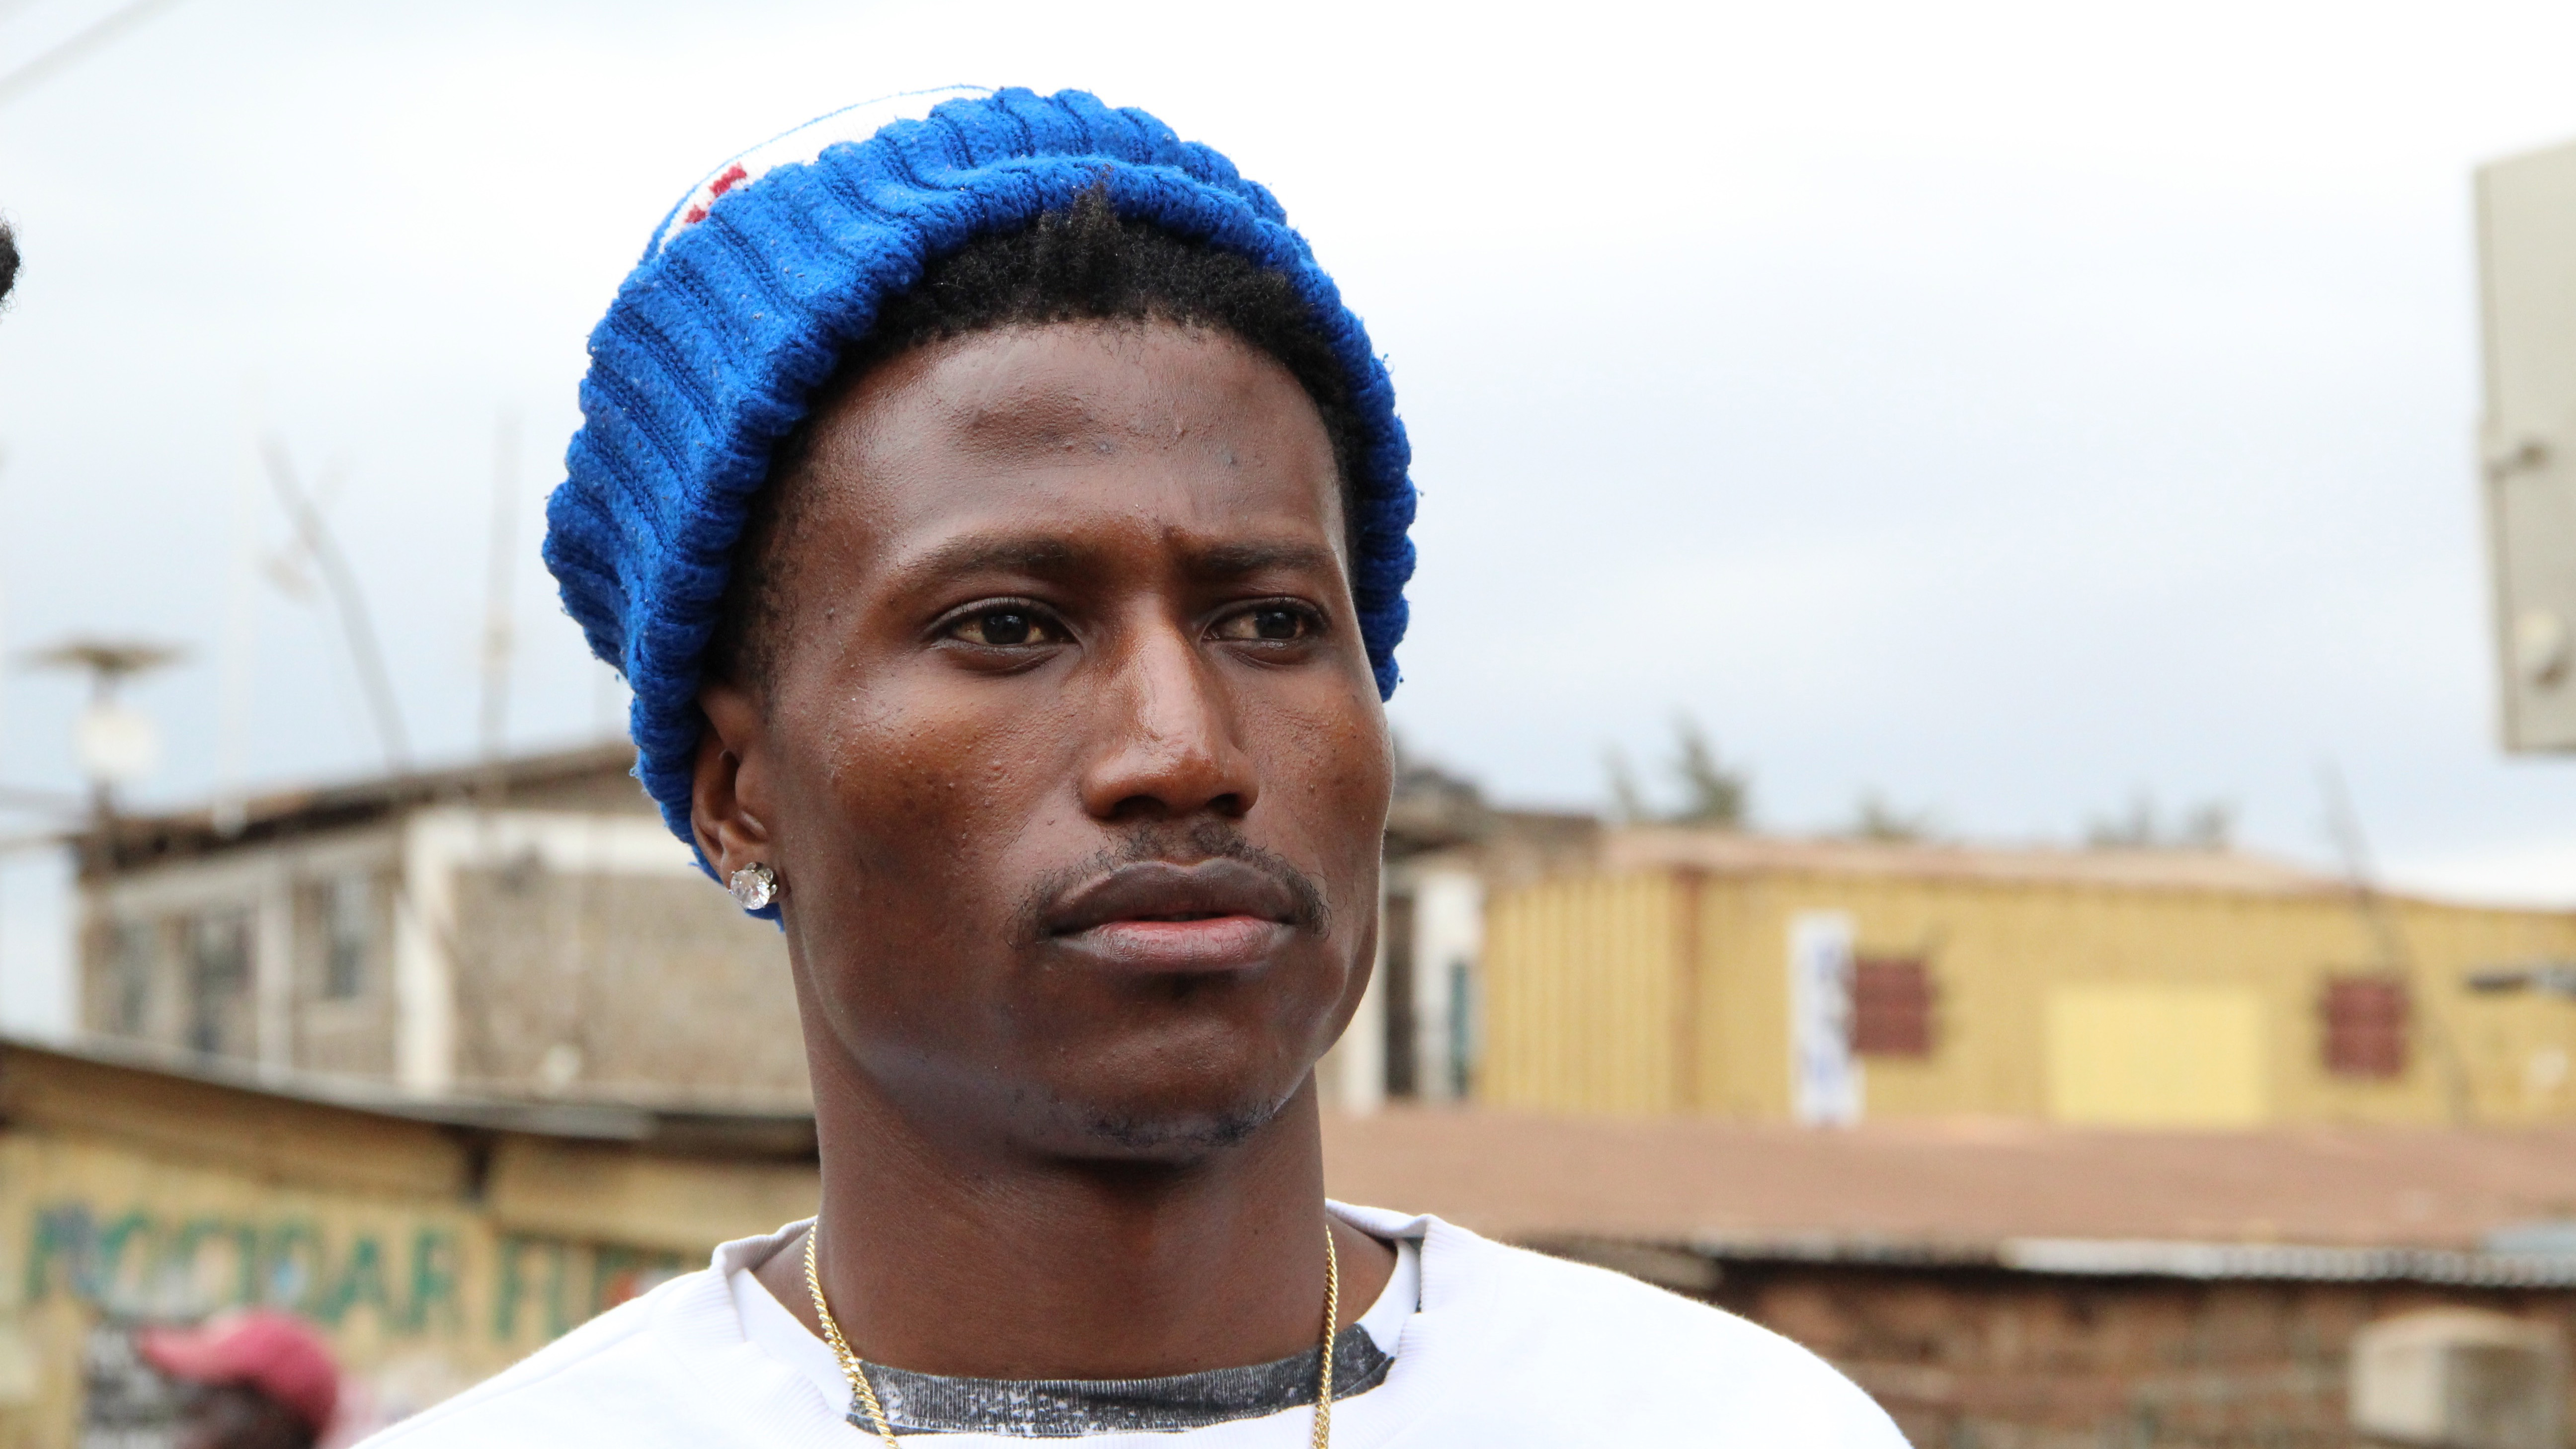 Kenyan rapper Octopizzo grew up in the Kibera slum and still has a house there. He has been speaking out against police violence he witnessed against protestors who congregated in the slum the day after the results of Kenya's election were announced.